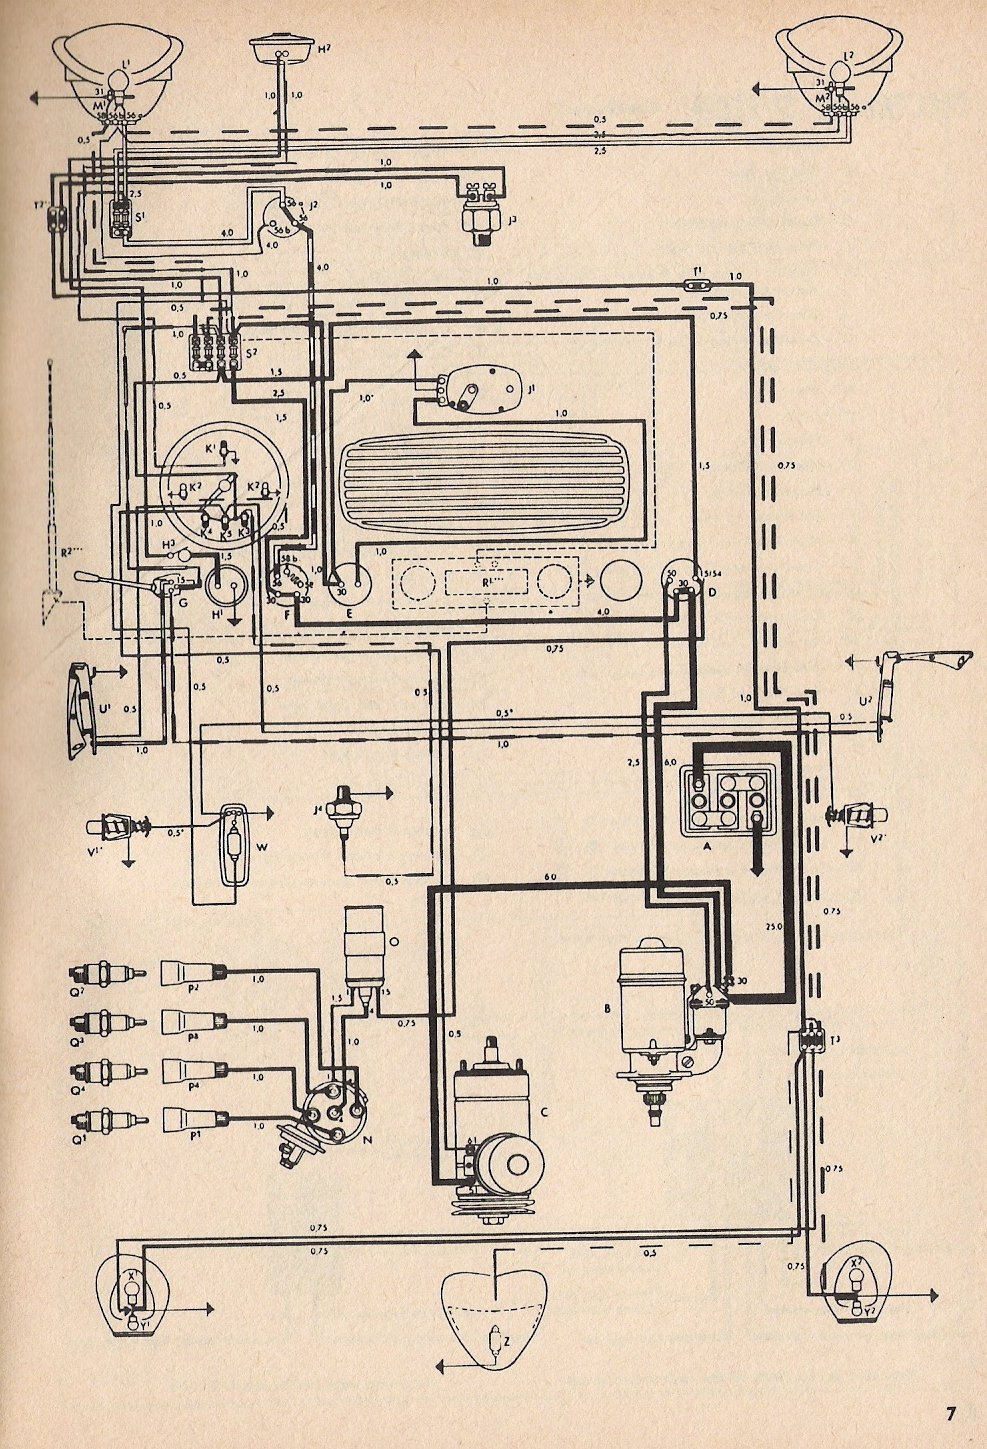 bug_54 thesamba com type 1 wiring diagrams 1972 volkswagen super beetle wiring harness at mifinder.co